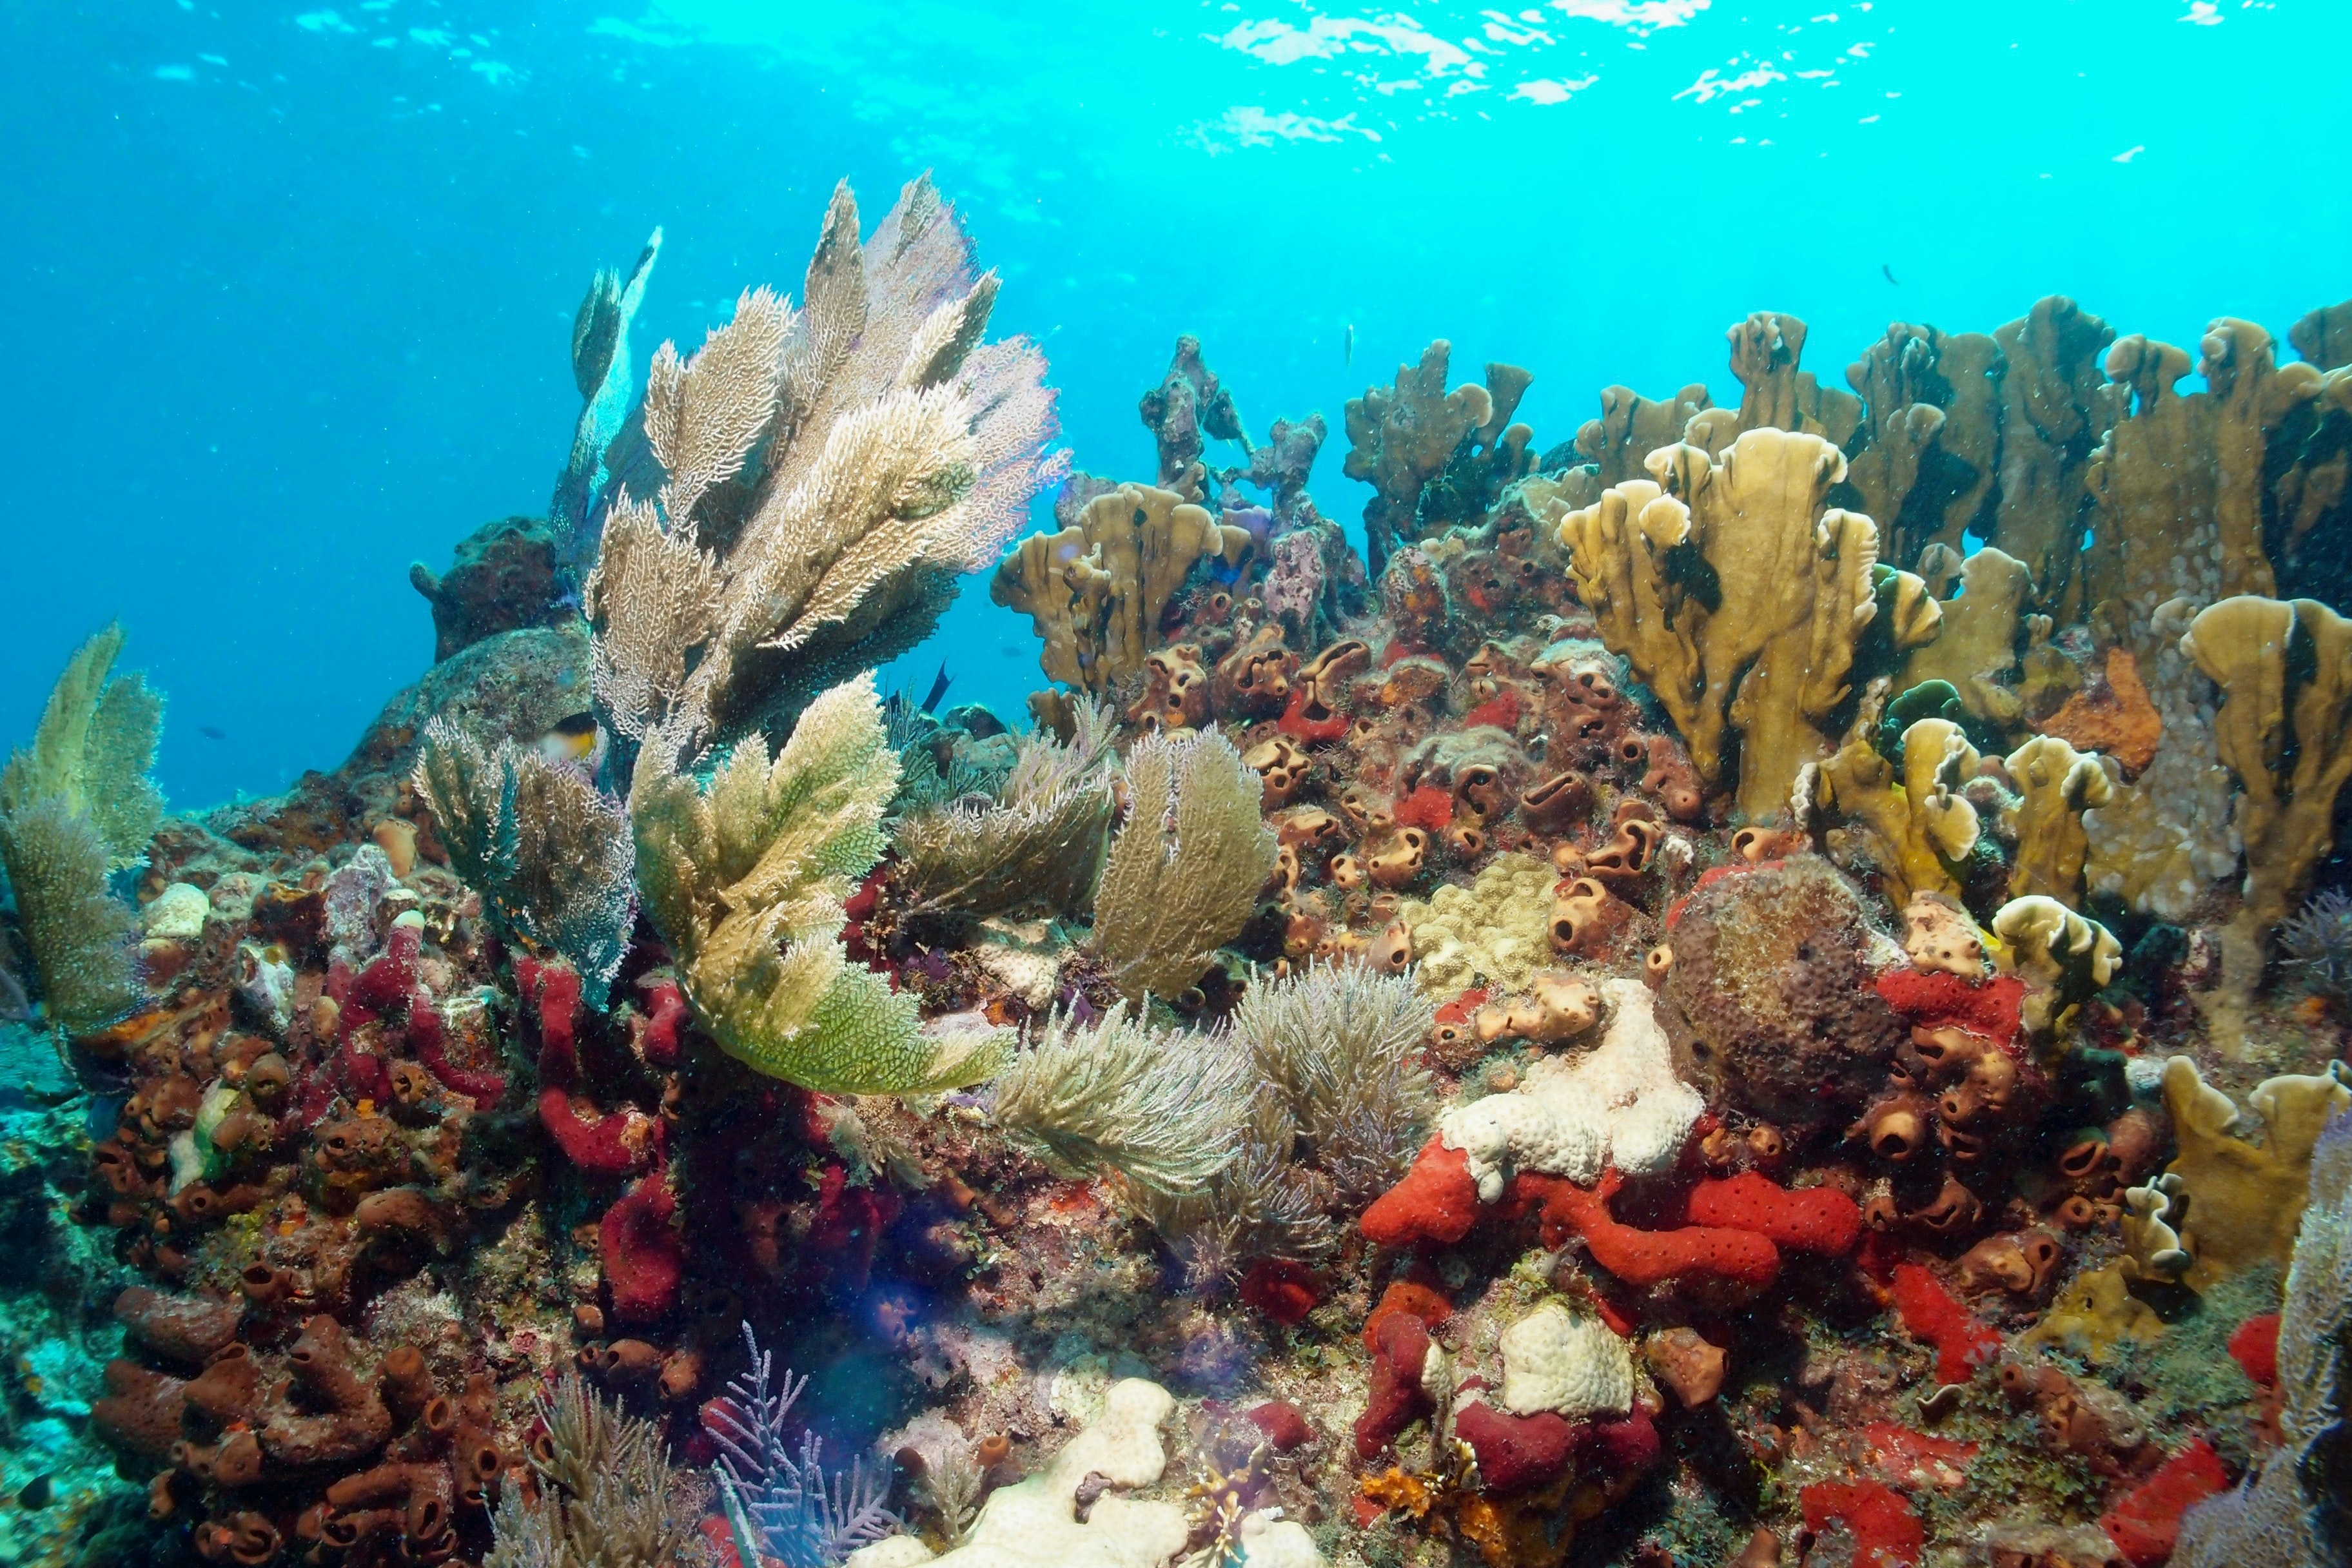 The pale and white-edged corals here are in the process of bleaching, or dying. The difference between those and the vibrant, thriving corals is clear at a glance.